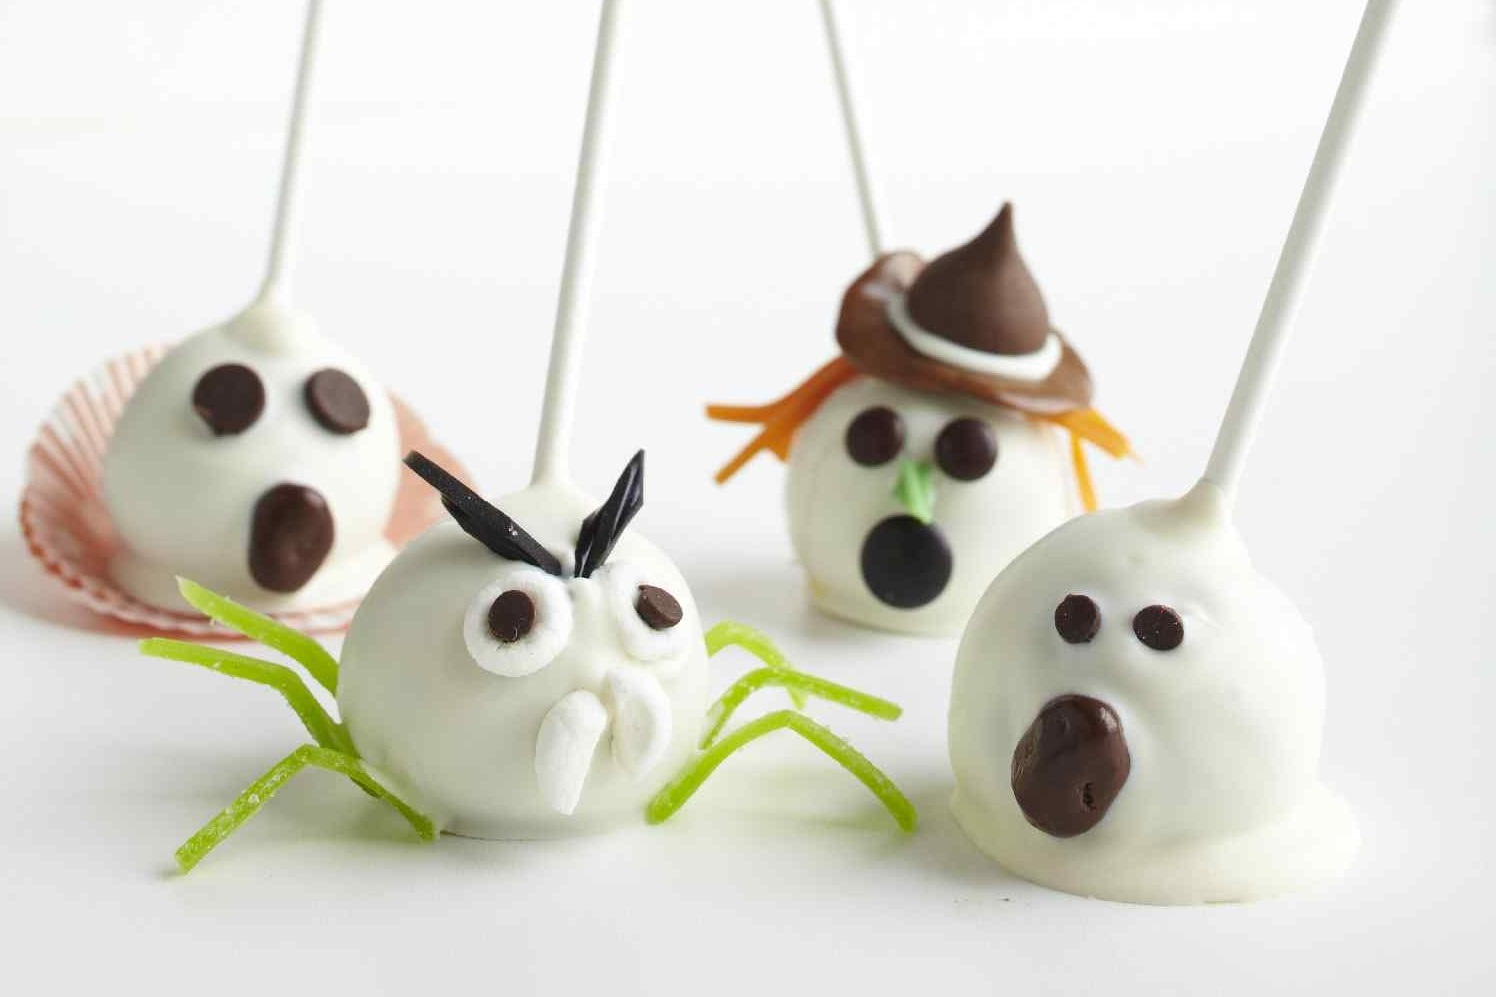 Halloween-themed cake pops dipped in icing and decorated to look like ghosts, witches, and spiders